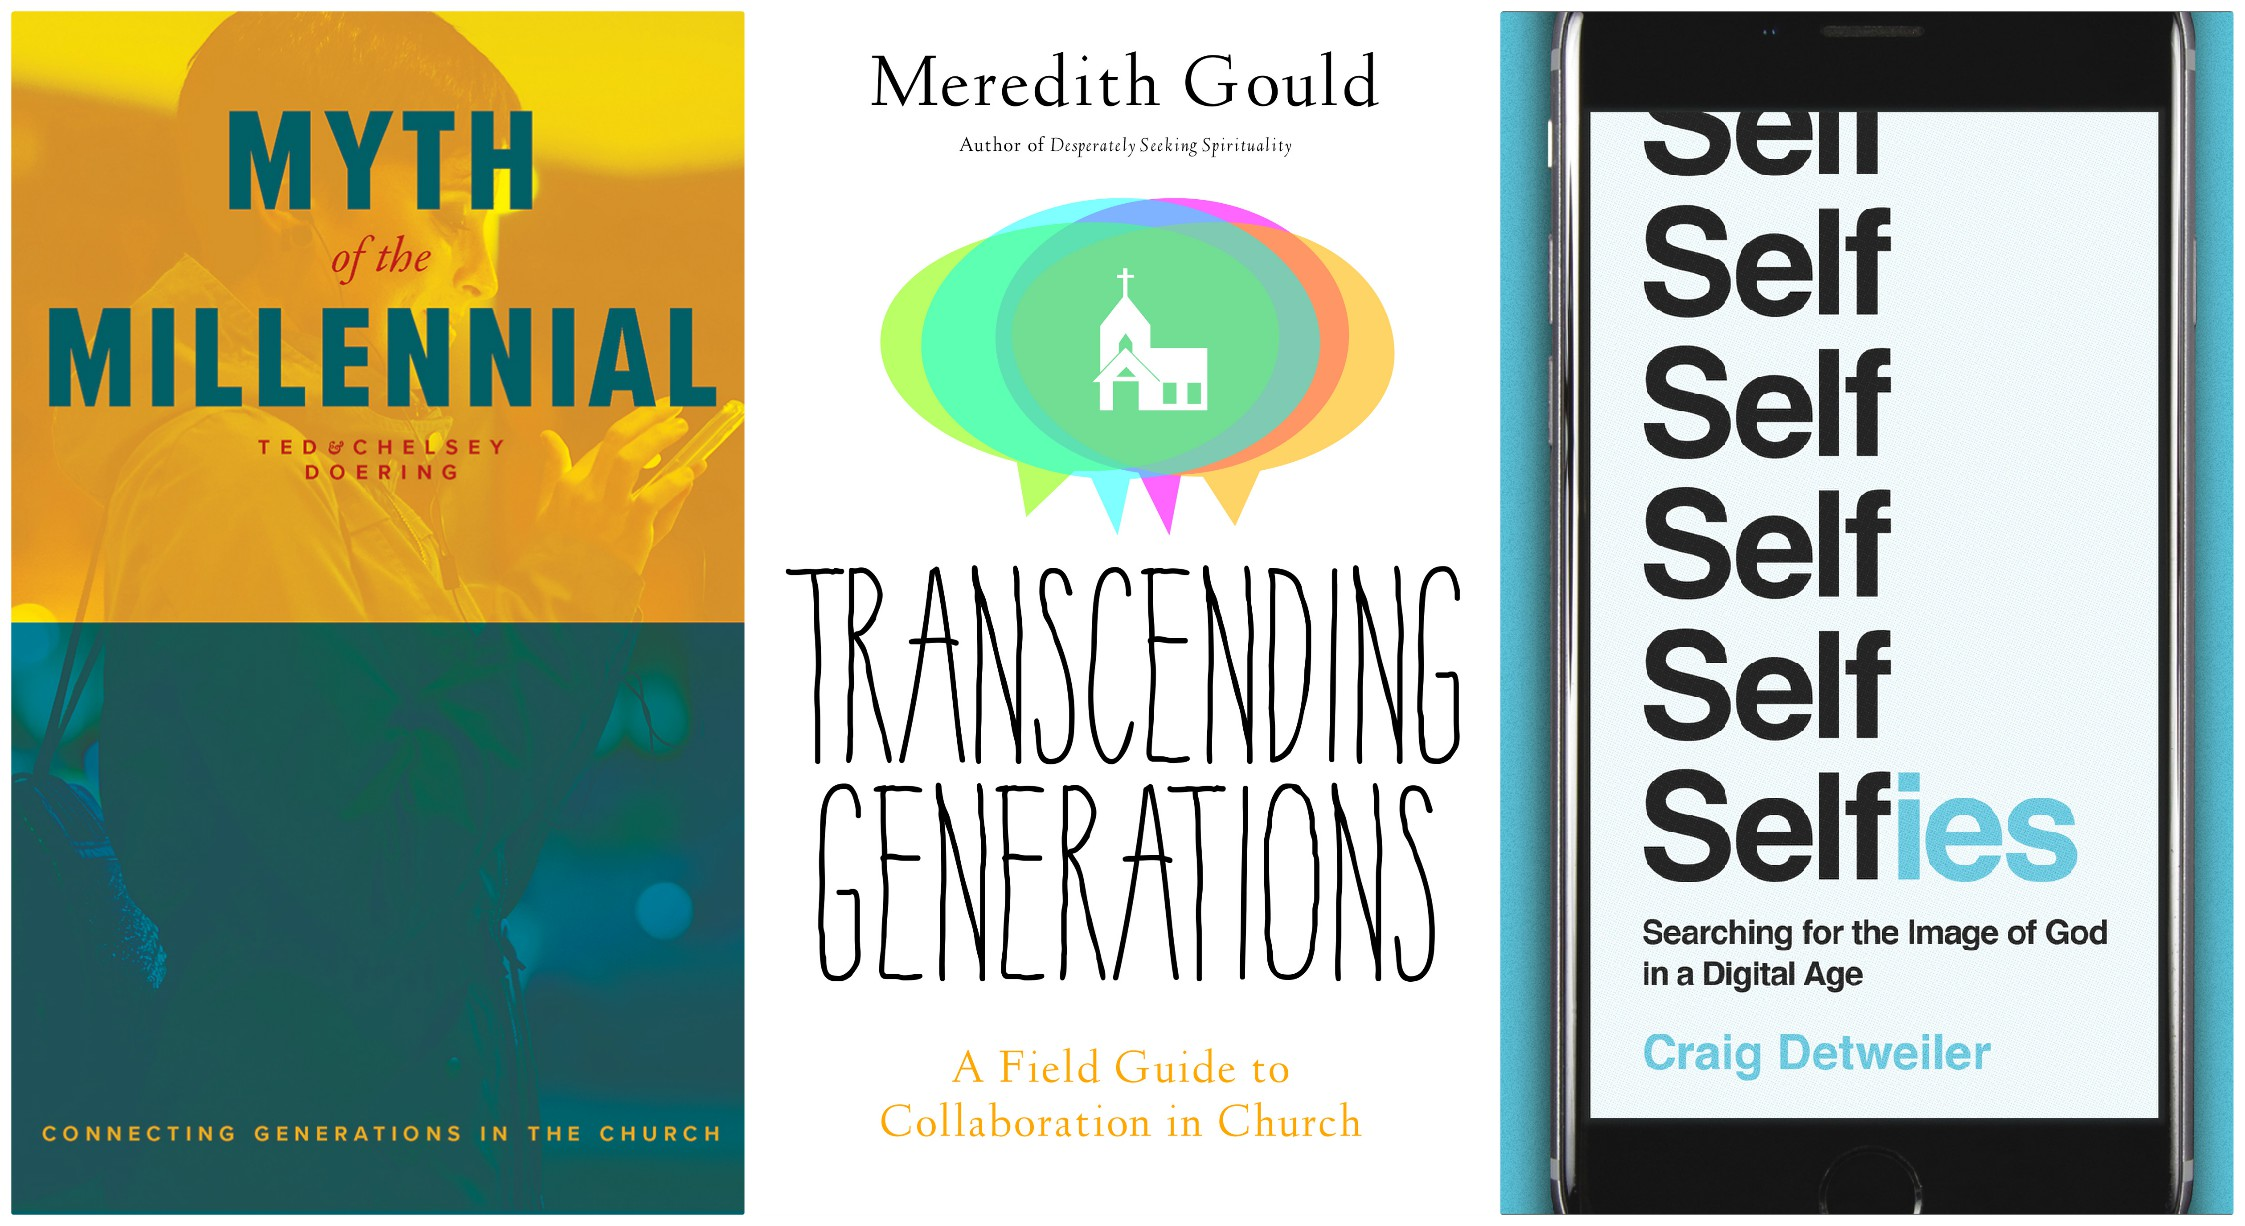 Good christian hookup books for teenagers